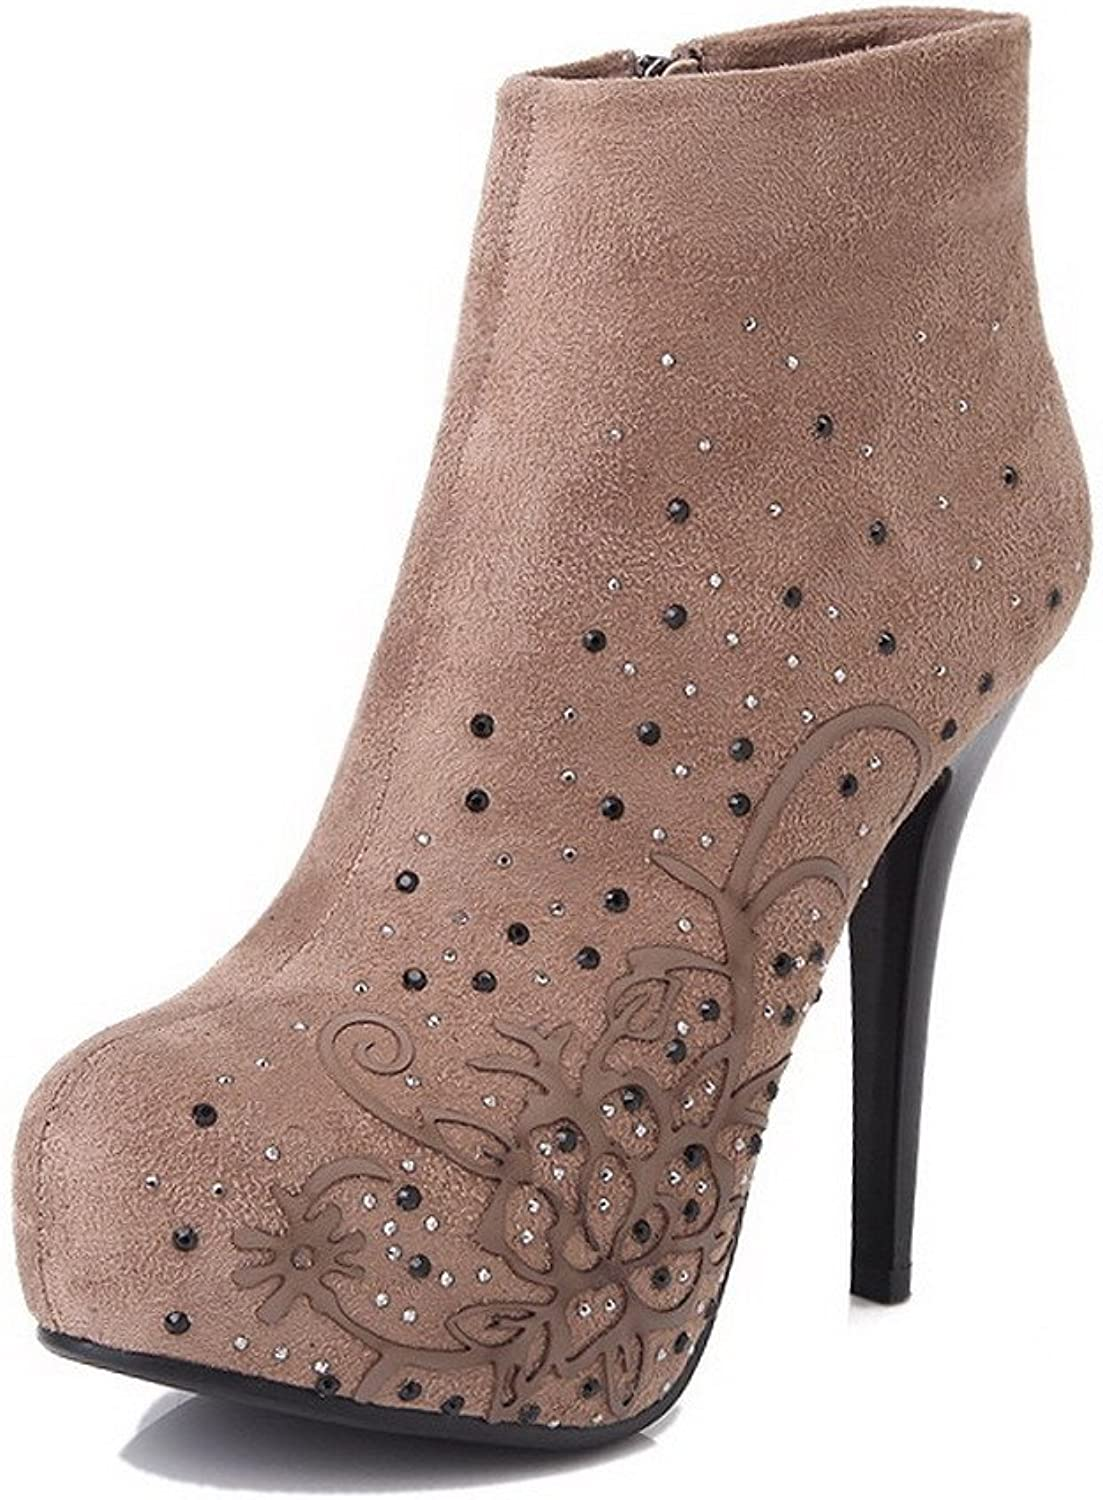 WeiPoot Women's Frosted Animal-Print Closed-Toe Boots with Thin High-Heeled